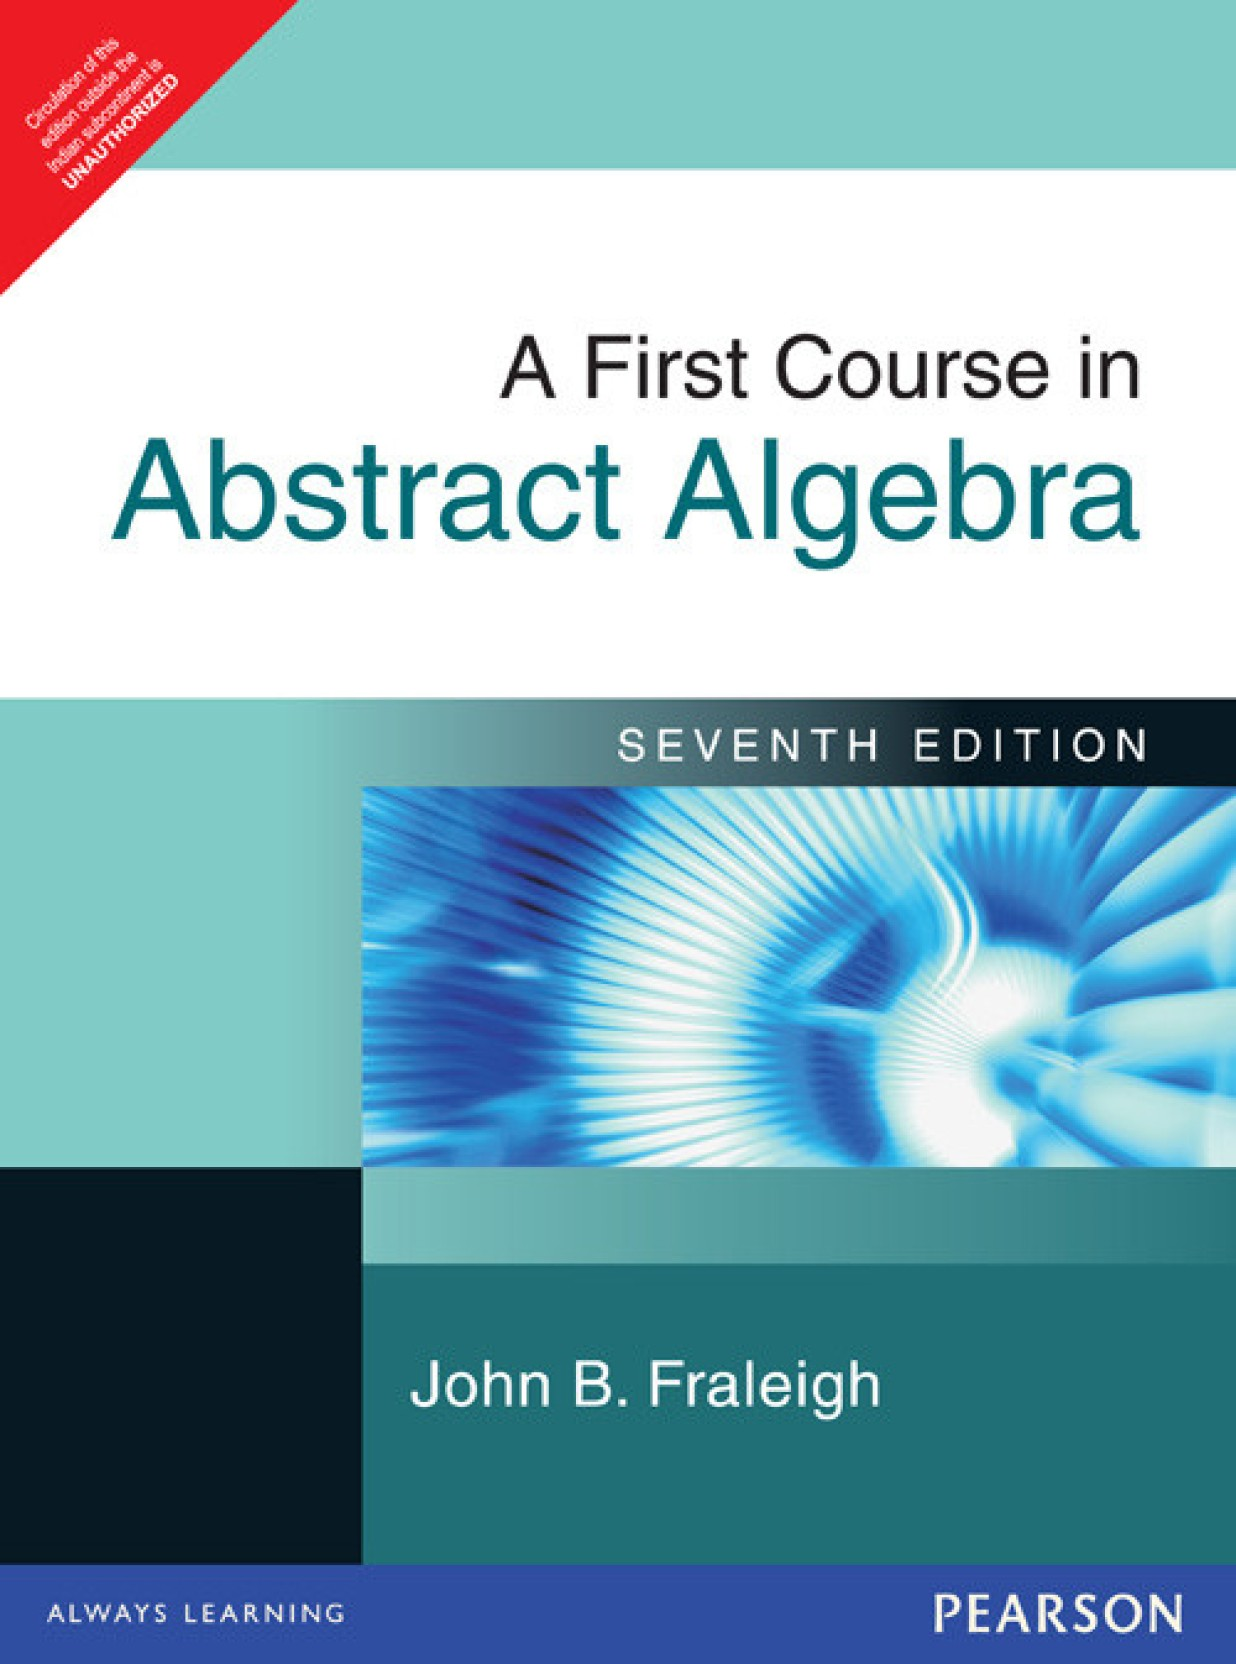 A First Course in Abstract Algebra 7th Edition 7th Edition. Home